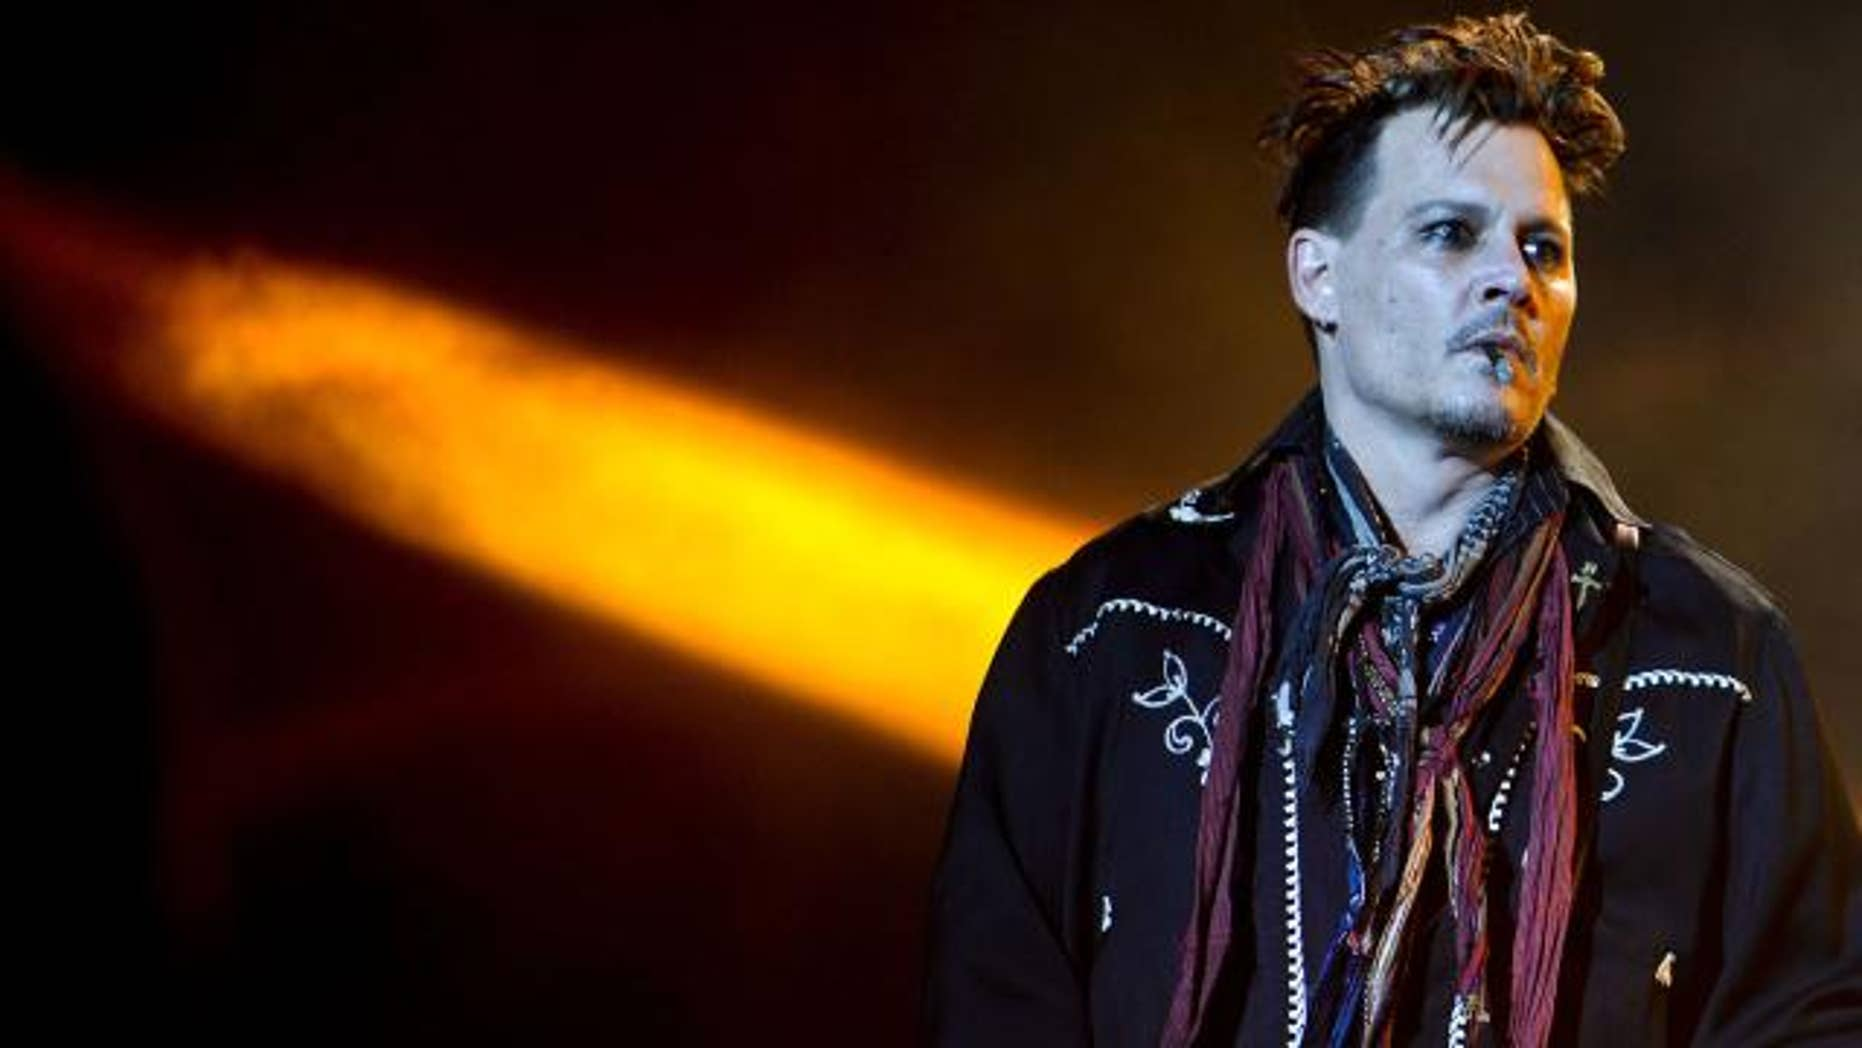 Johnny Depp hits the stage in Portugal.